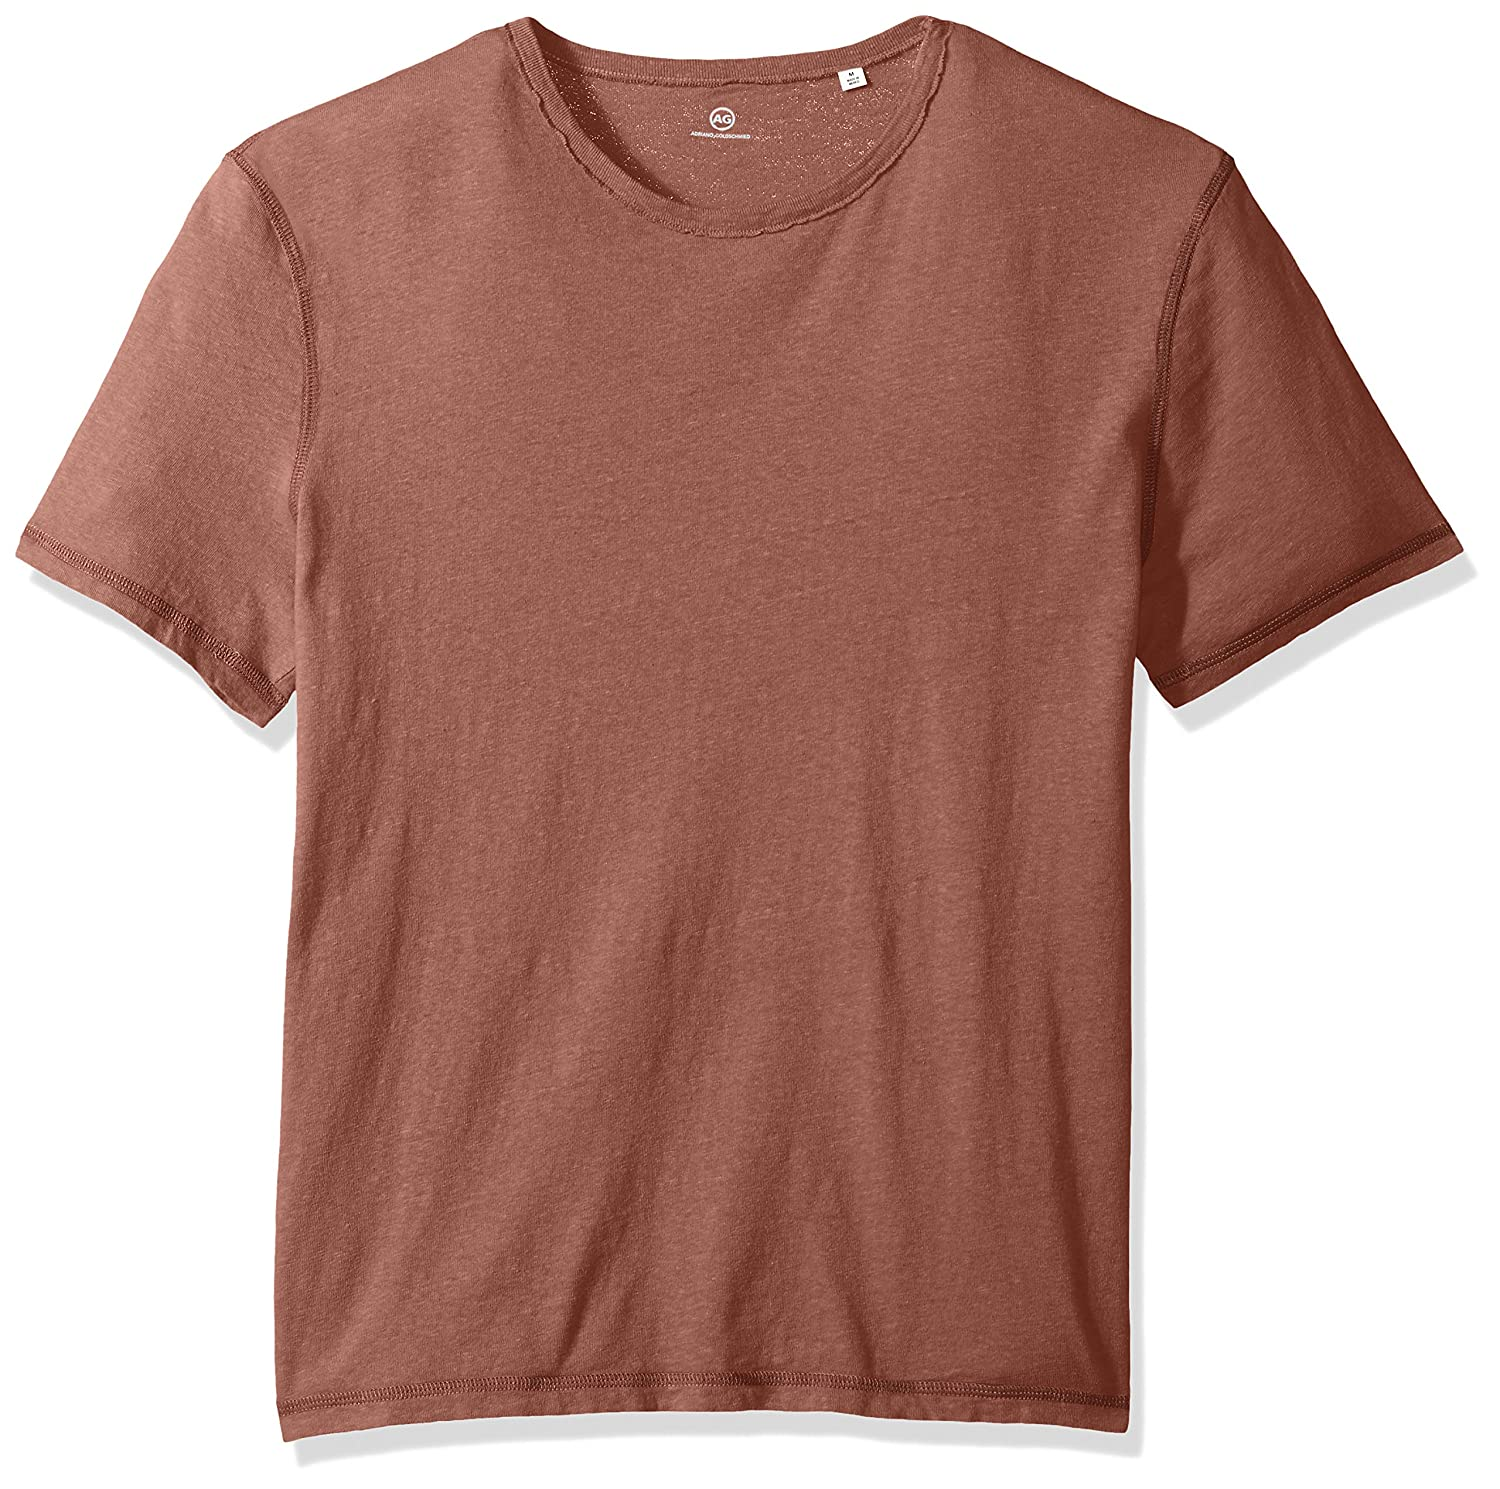 AG Adriano Goldschmied Mens Ramsey Short Sleeve Vintage Jersey Crew